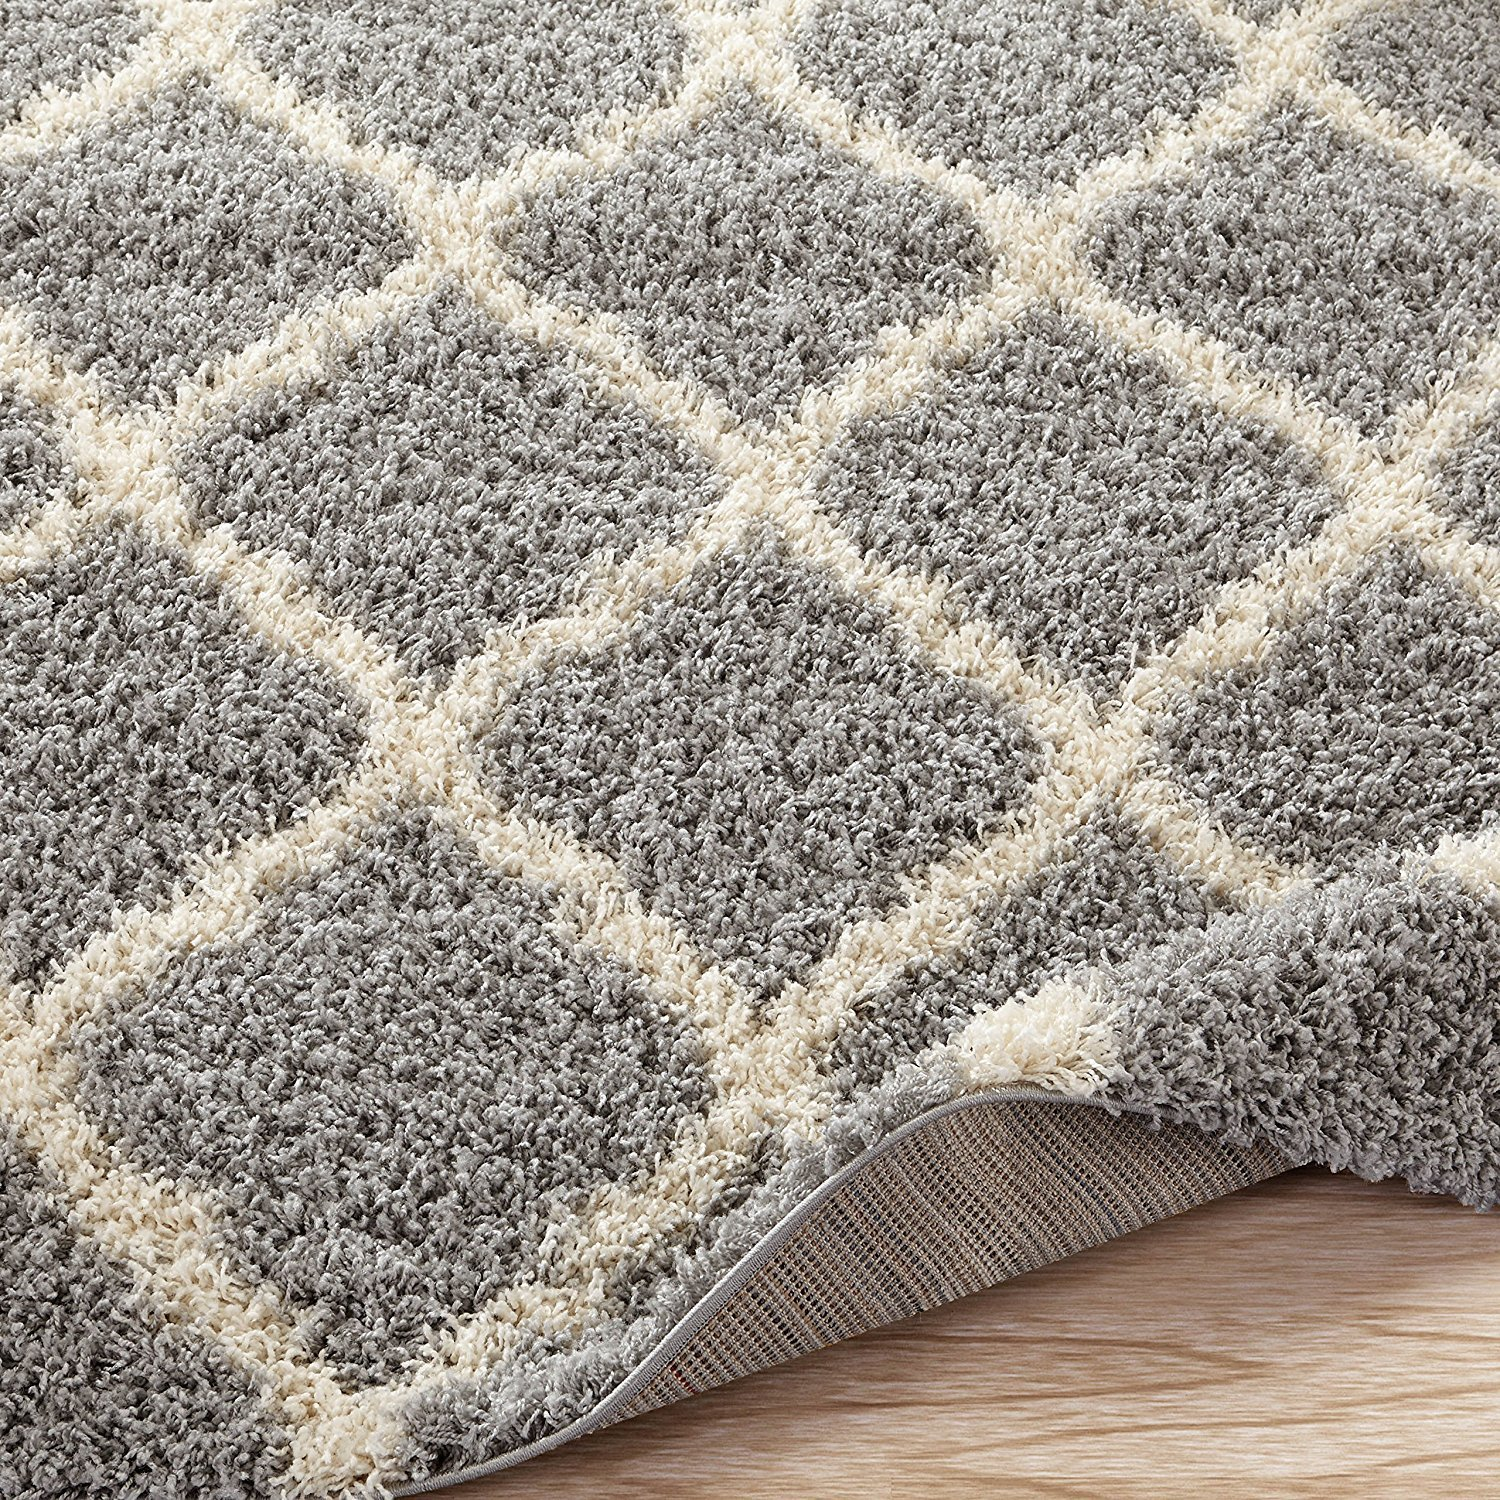 Sweet Home Stores Cozy Shag Collection Moroccan Trellis Design Shag Rug Contemporary Living & Bedroom Soft Shaggy Area Rug,   Grey & Cream,  94'' L x 118'' W by Sweet Home Stores (Image #5)